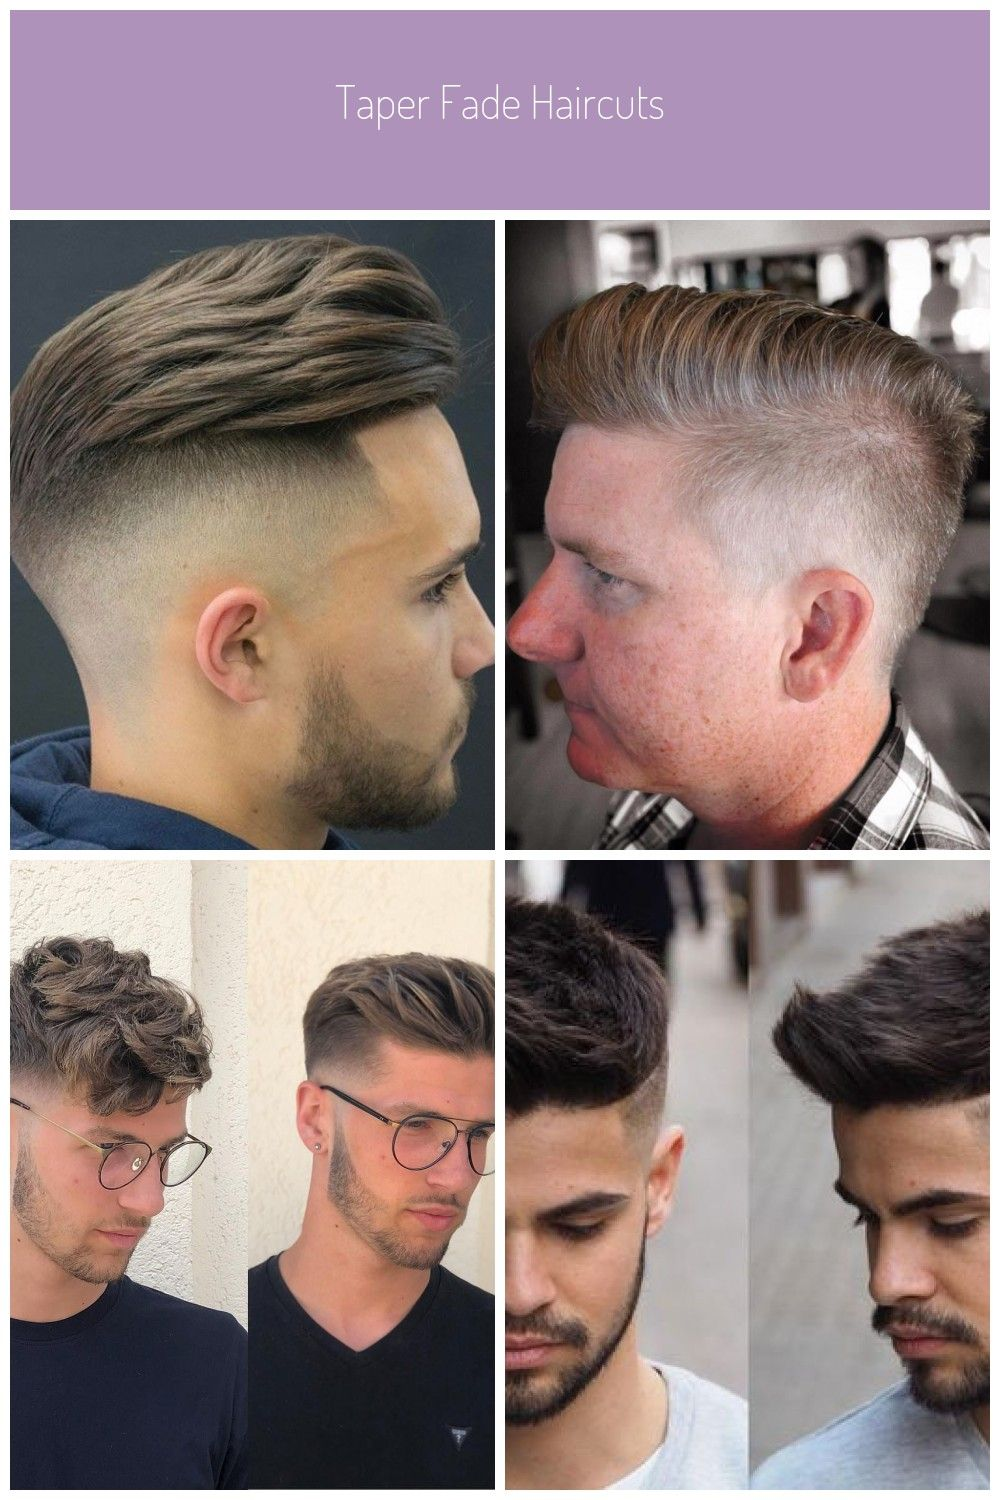 Pompadour Taper Fade Best Taper Fade Haircuts For Men Cool Men S Taper Fade Hairstyles Low High Mid Taper Fade Haircut Fade Haircut Mens Haircuts Fade